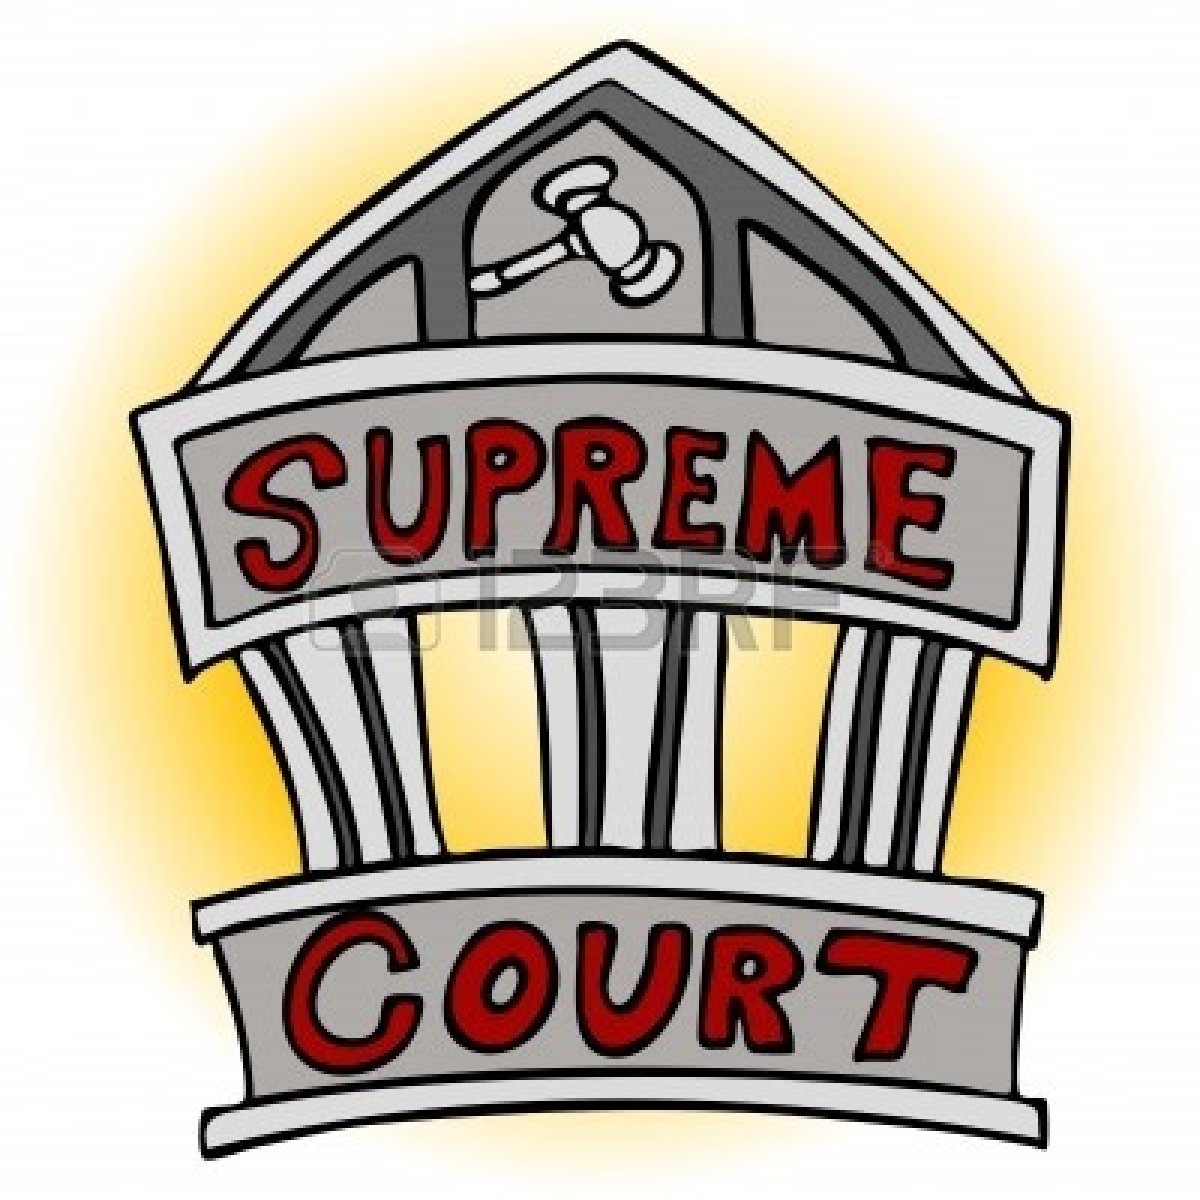 Sentencing clipart banner library court building. clipart   Clipart Panda - Free Clipart Images banner library